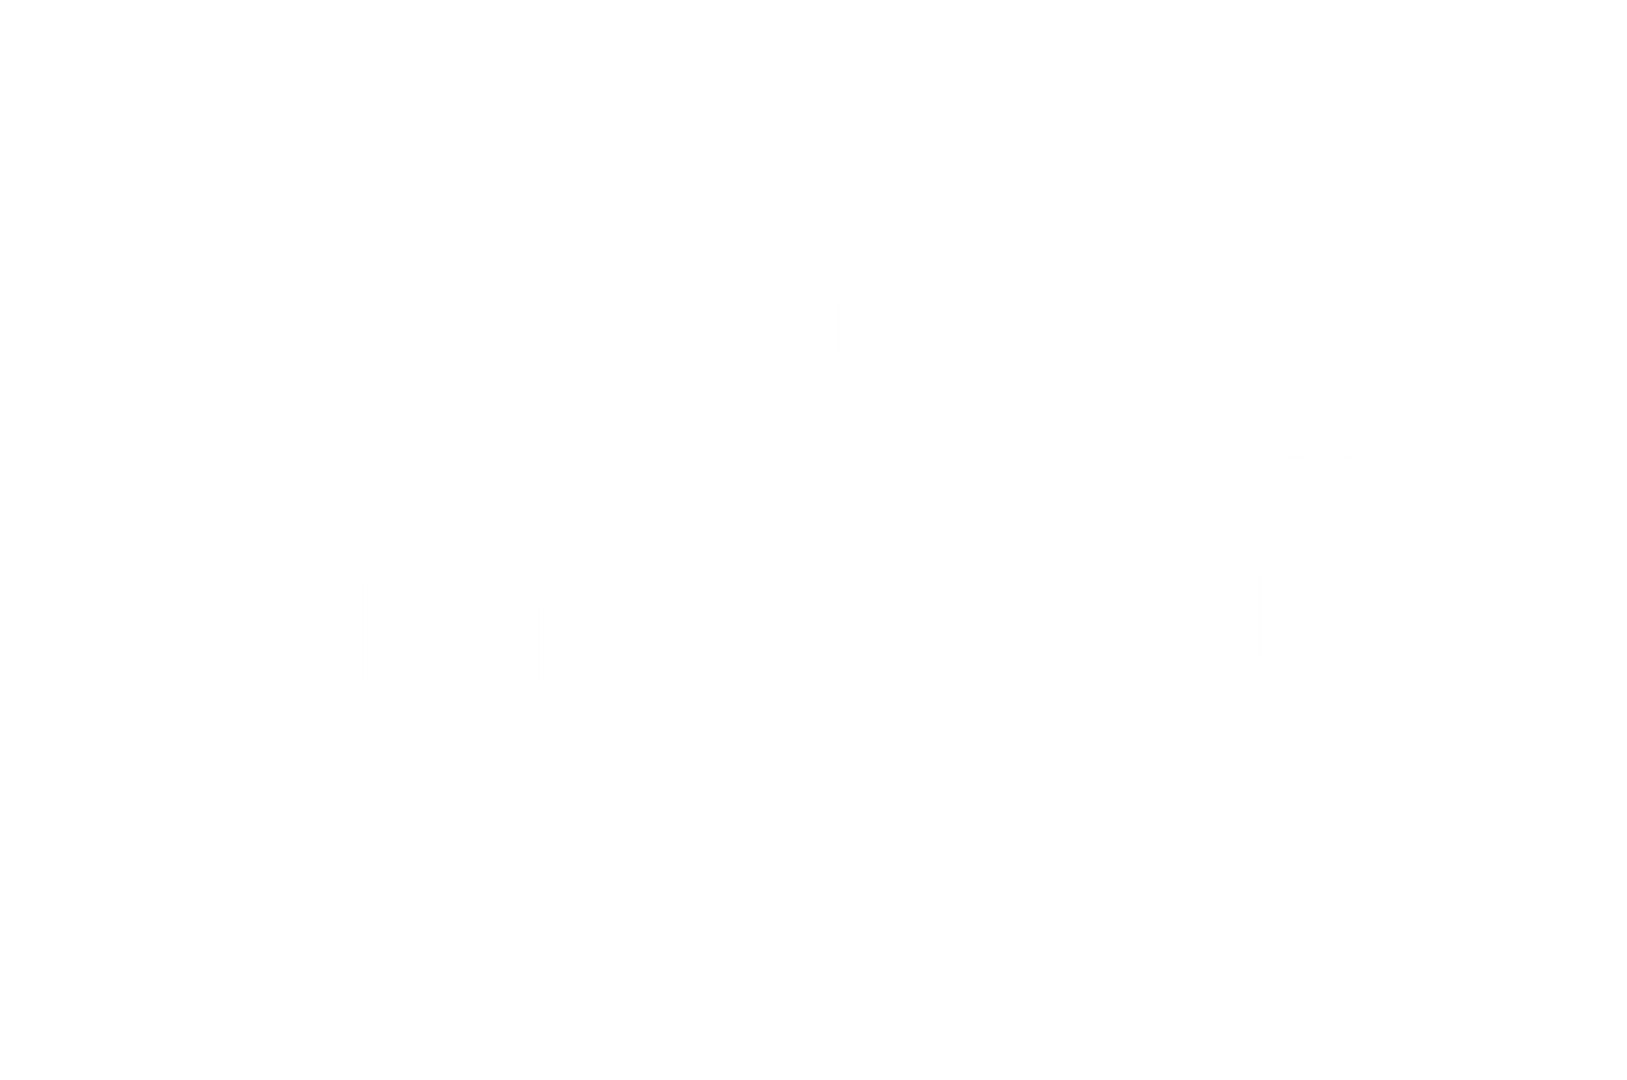 OFFICIAL SELECTION - Stockholm City Film